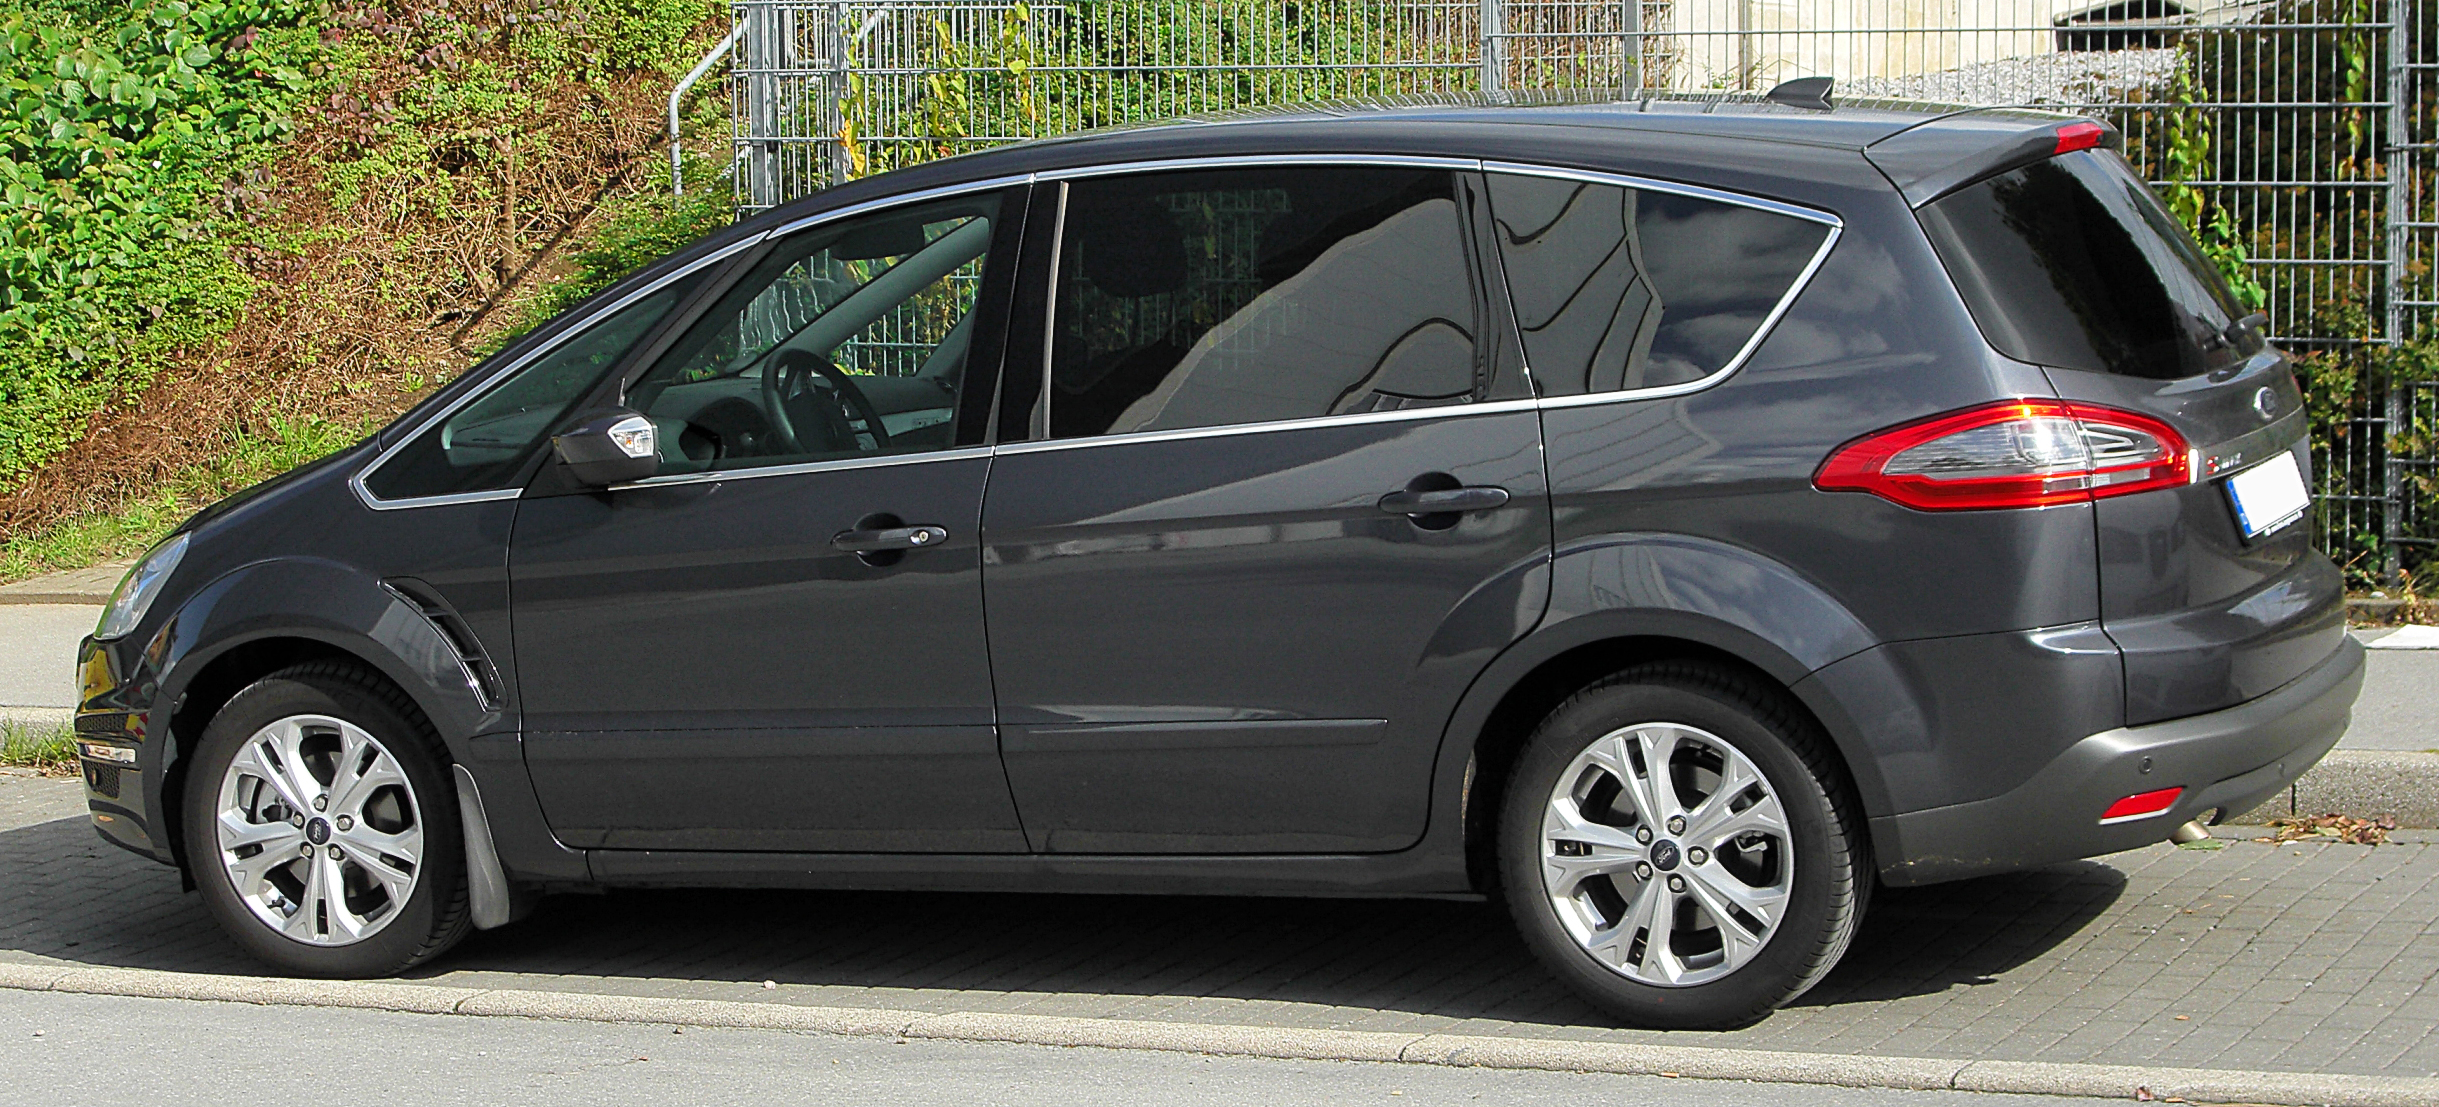 file ford s max facelift side wikimedia commons. Black Bedroom Furniture Sets. Home Design Ideas